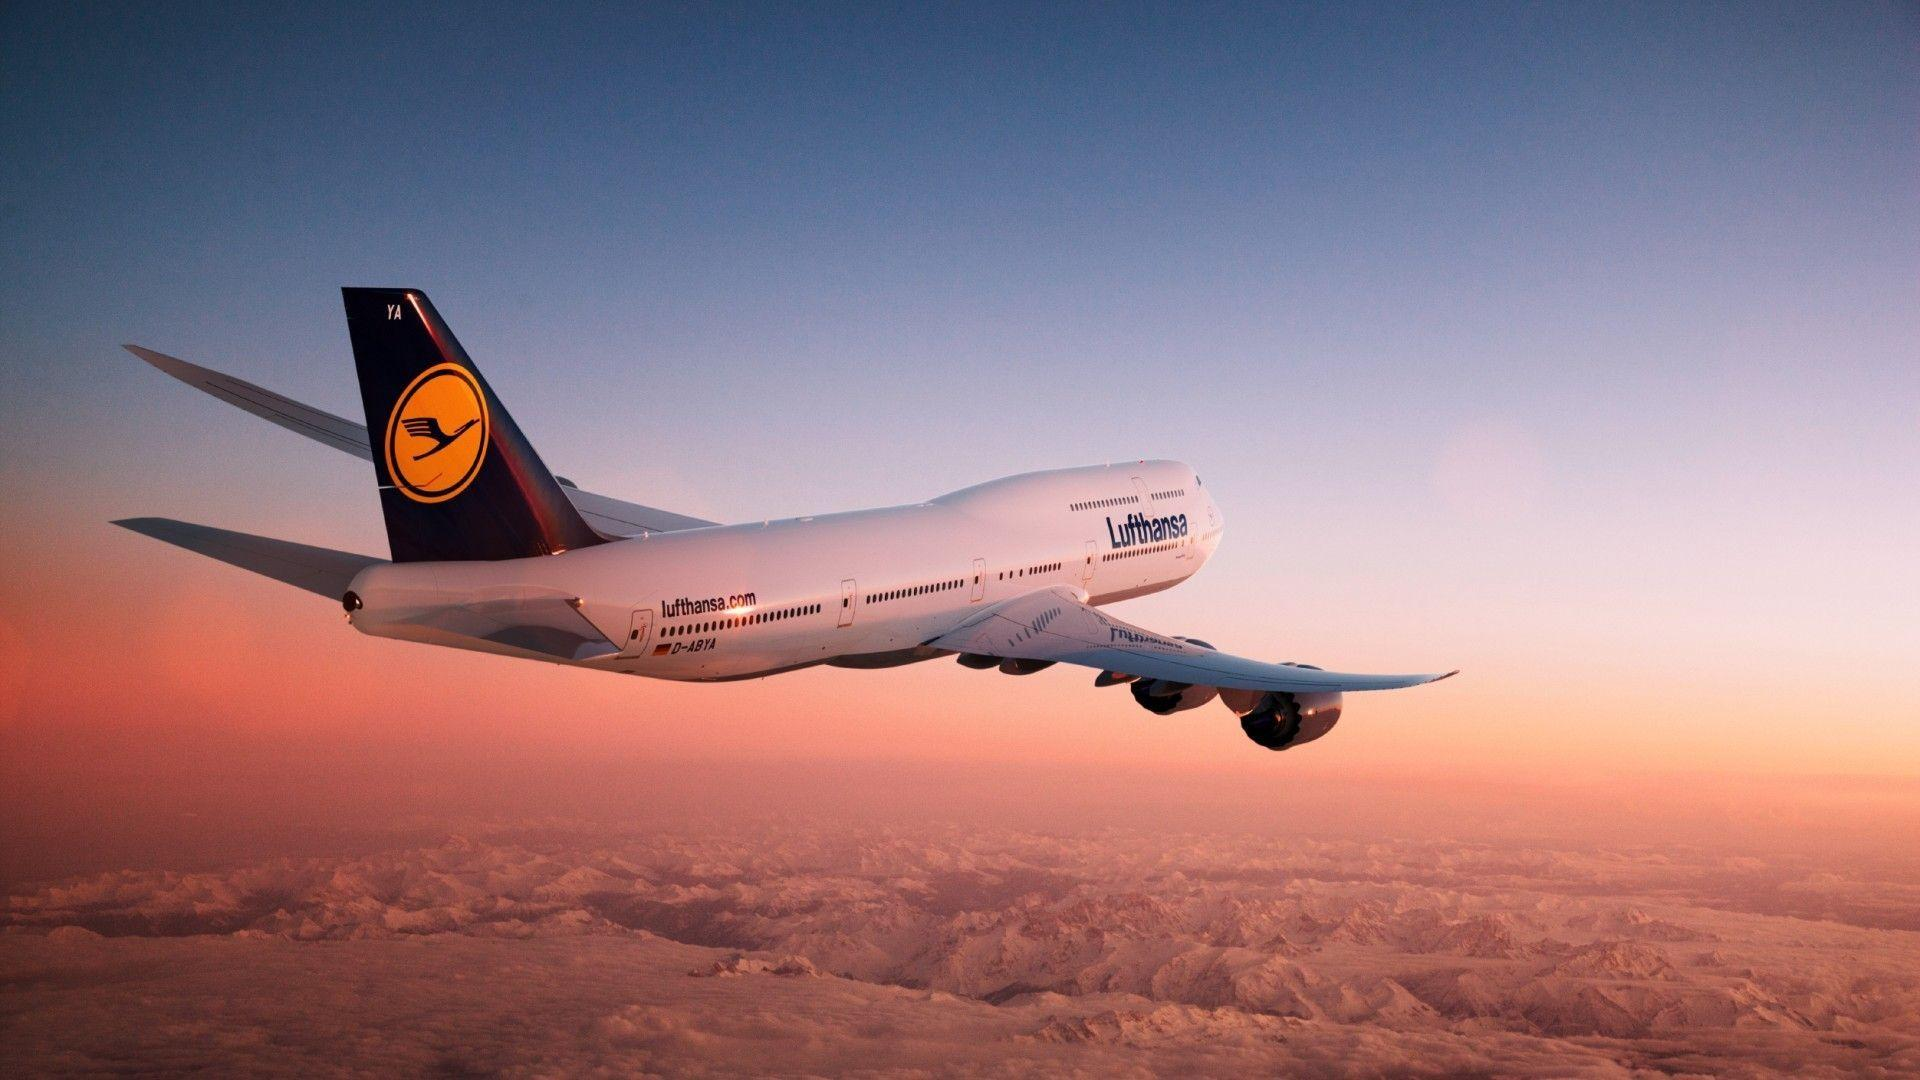 1920x1080 - Boeing 747 Wallpapers 4